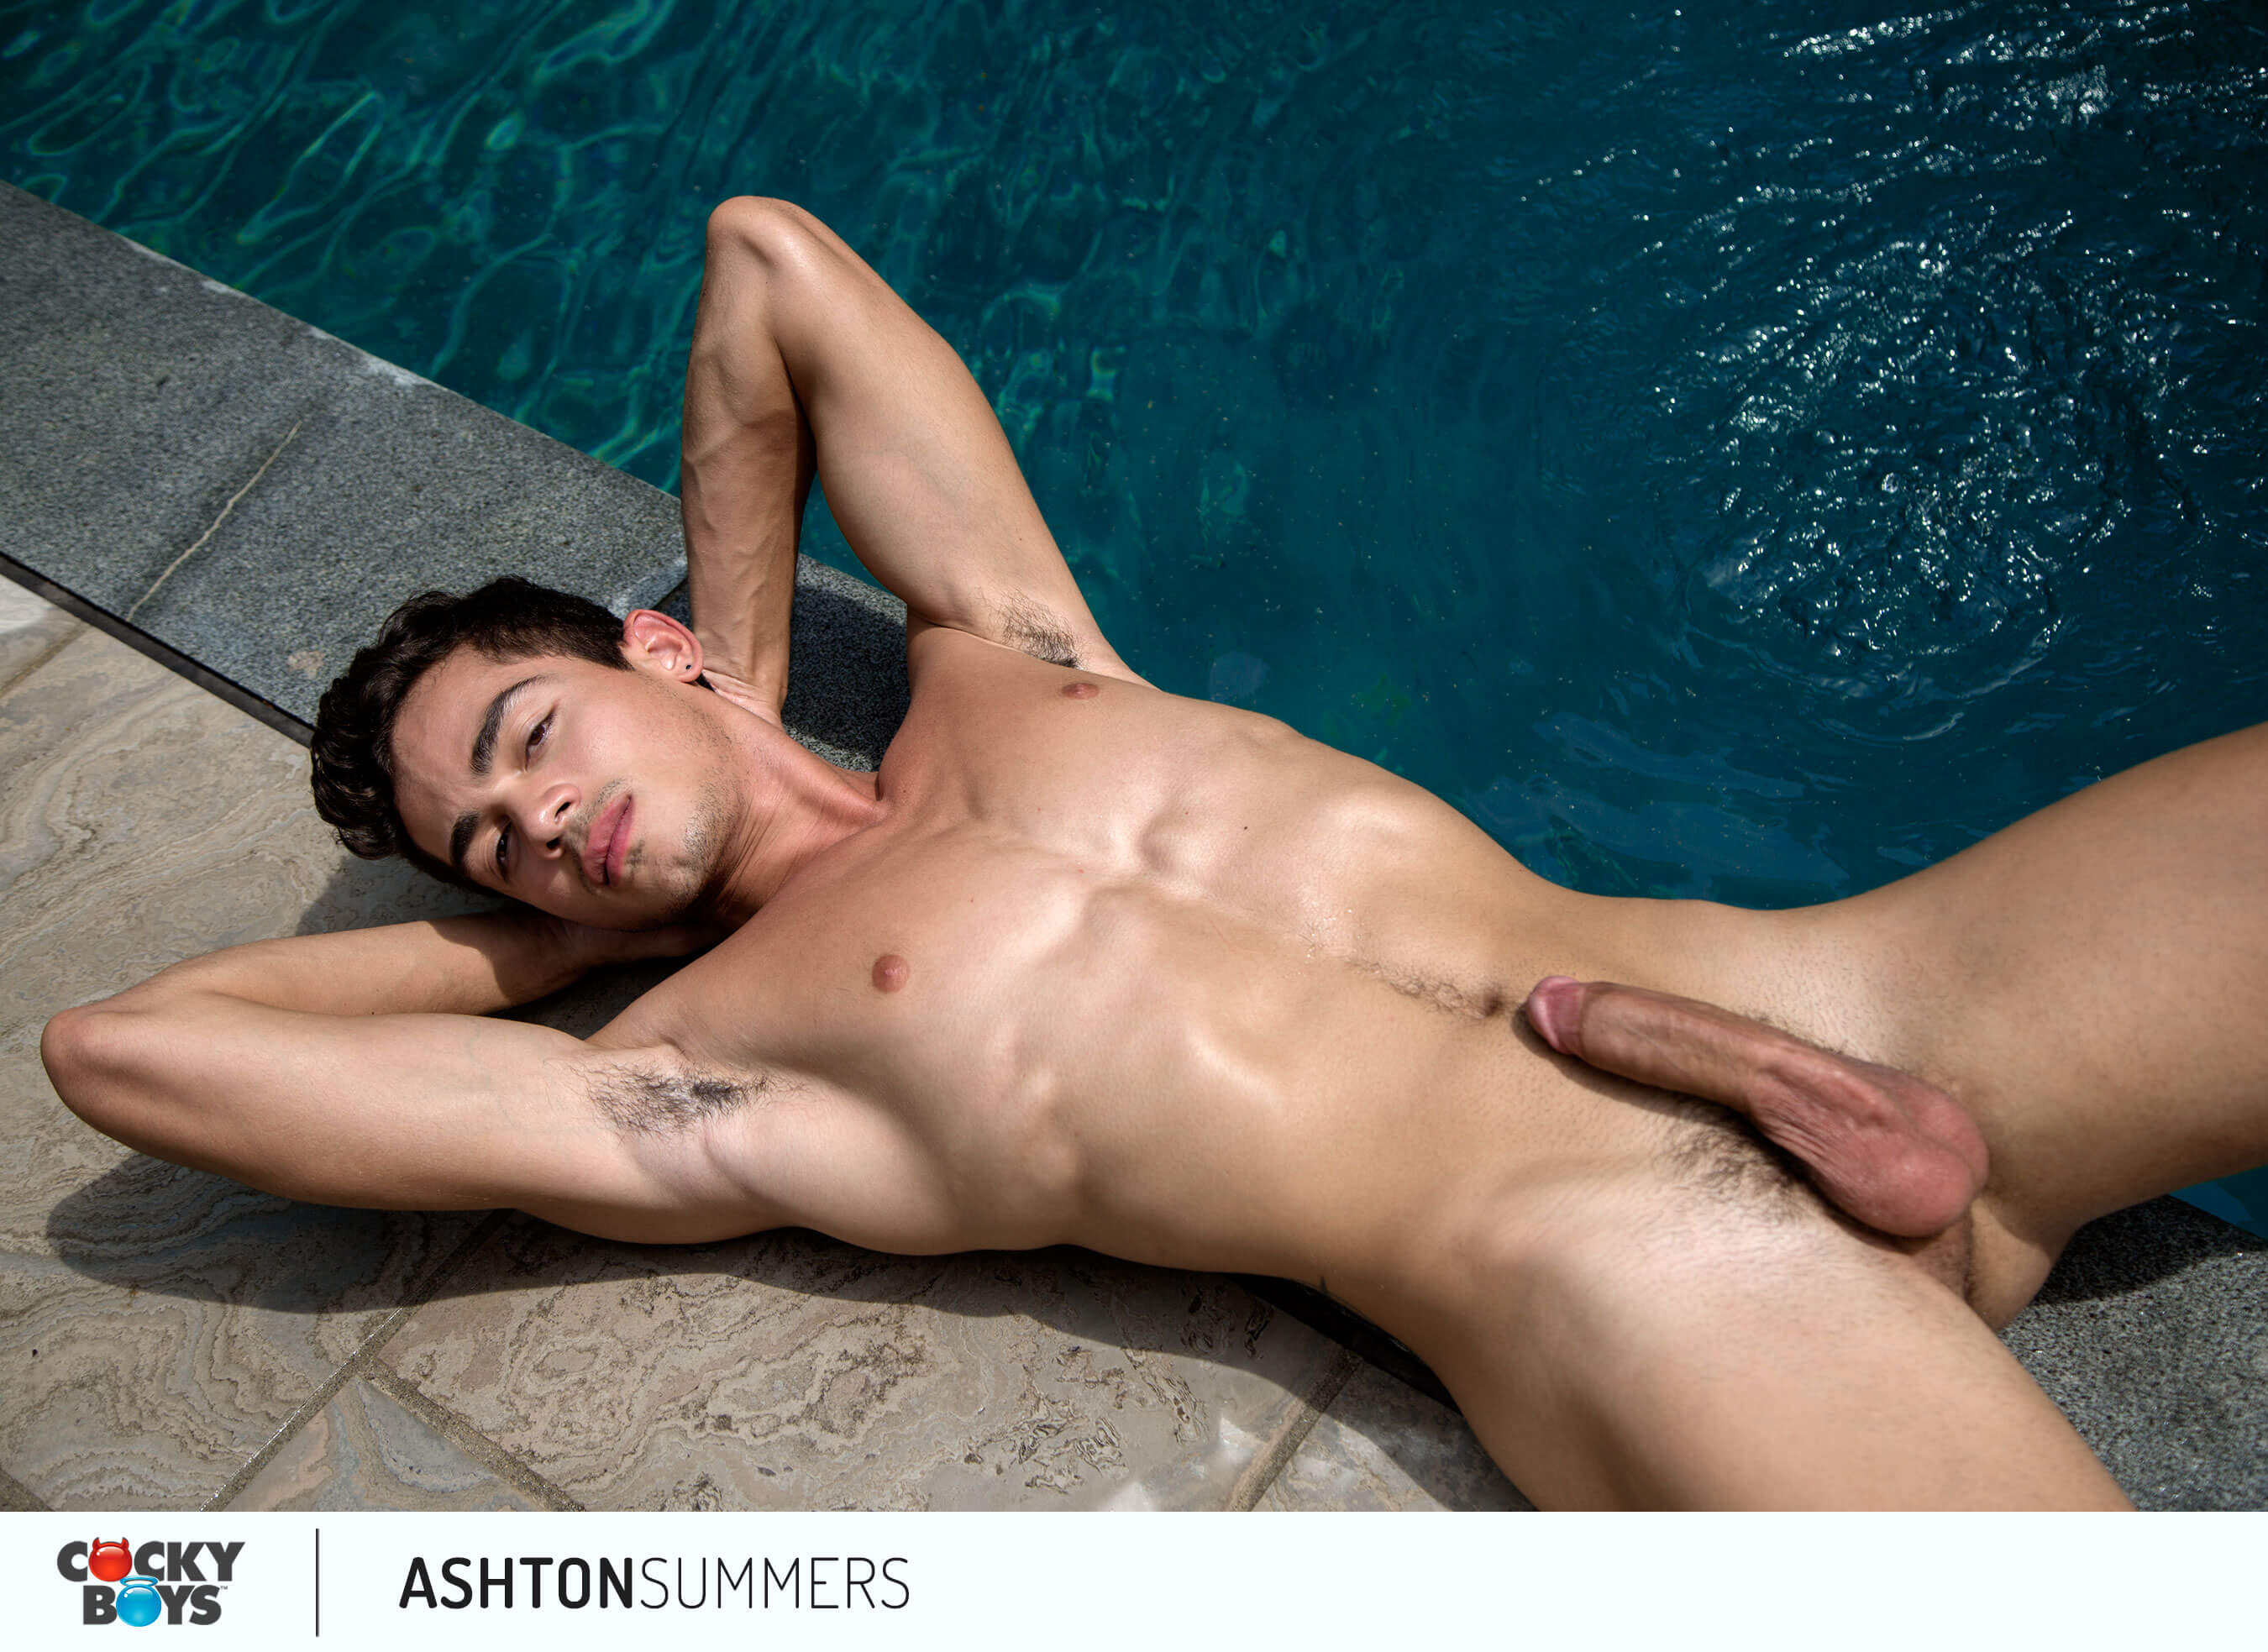 cocky boys splash that ass ashton summers and allen king poolside fuck gay porn blog image 44